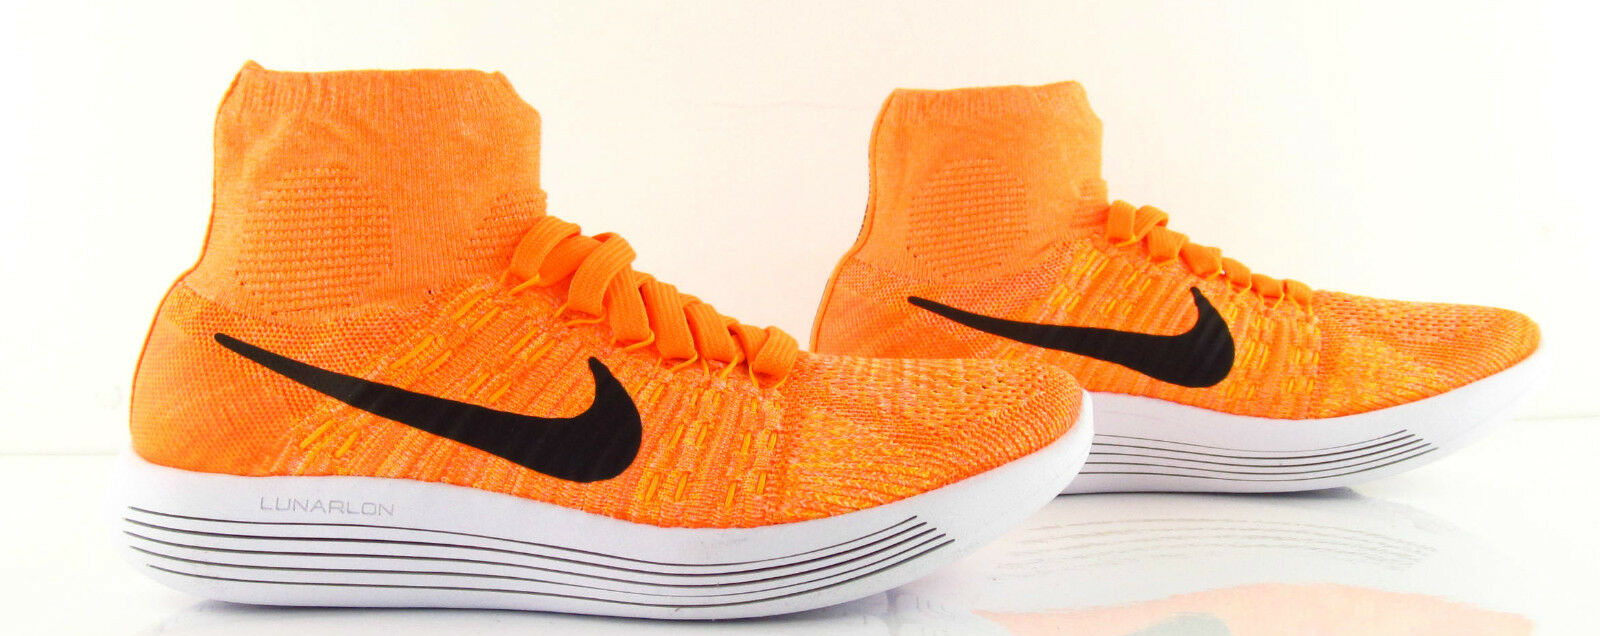 Nike Wmns Lunarepic Flyknit Laser Total Orange fonctionnement New US_7.5 UK_5 Eur 38.5